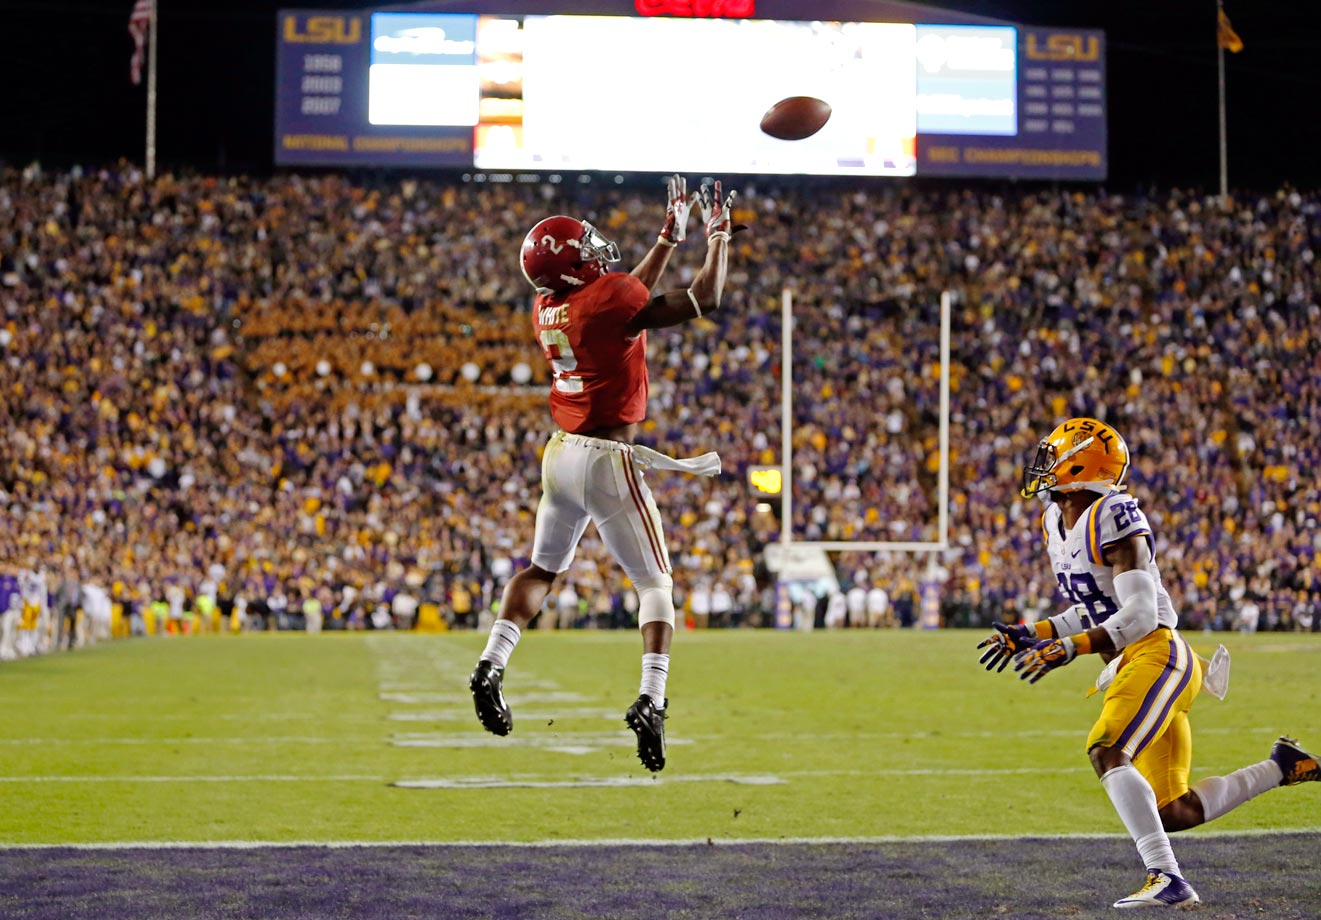 The Tide seemed dead when LSU had the ball at the six-yard line and 1:13 to go in a 10-10 game. But the Tigers settled for a field goal, and Bama evened it up with three seconds left. Sims hit DeAndrew White for the game-winning score in overtime.